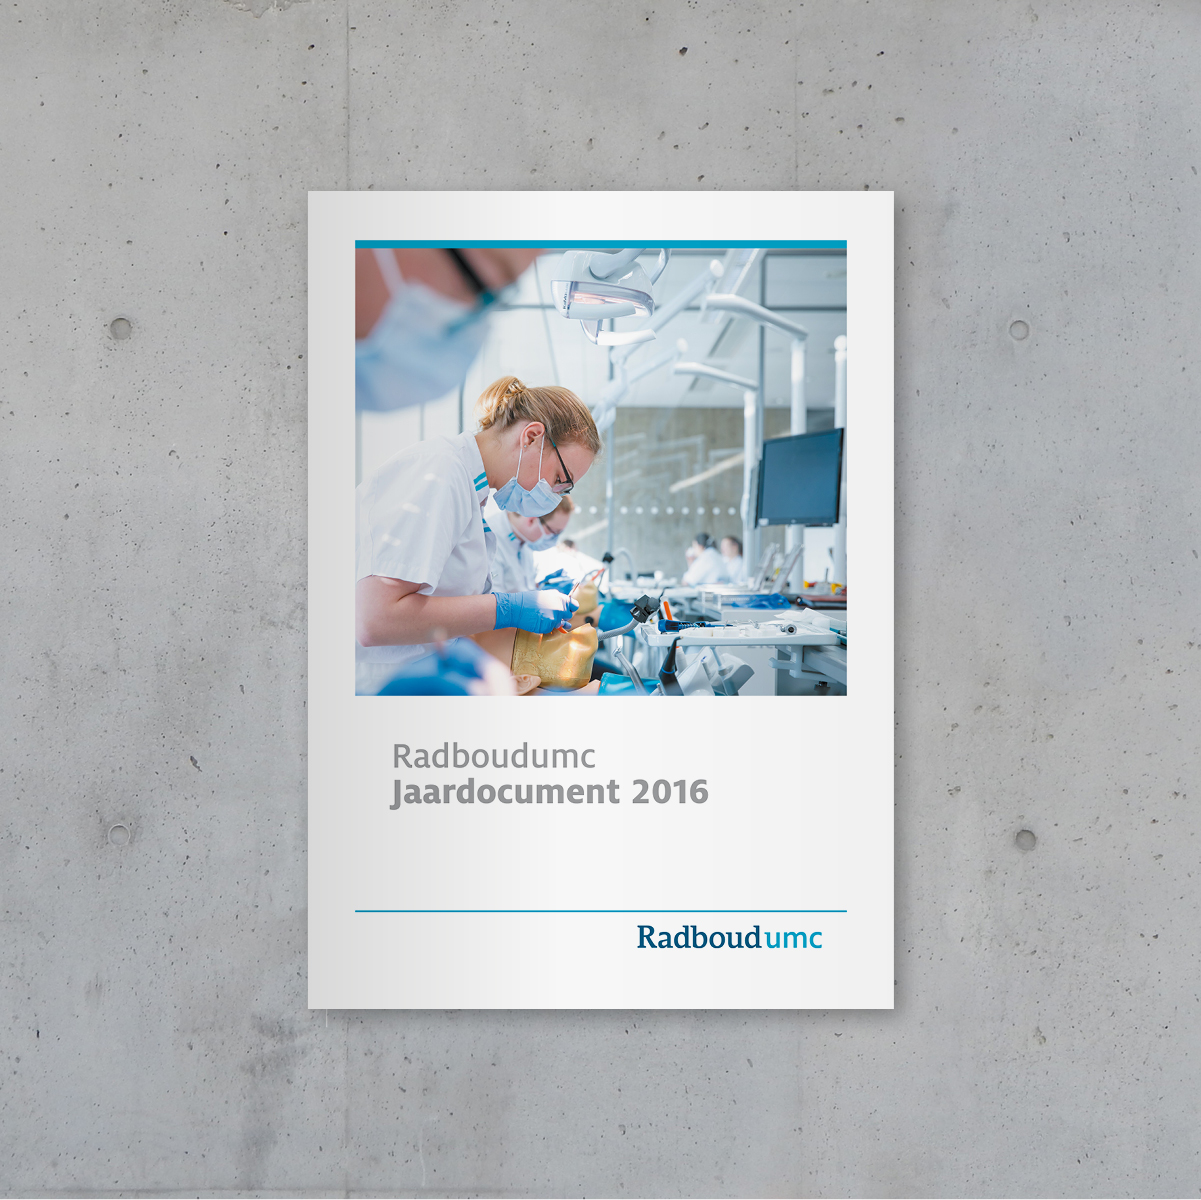 Jaarverslag brochure corporate communicatie Radboudumc - Communicatiebureau Puntkomma Nijmegen